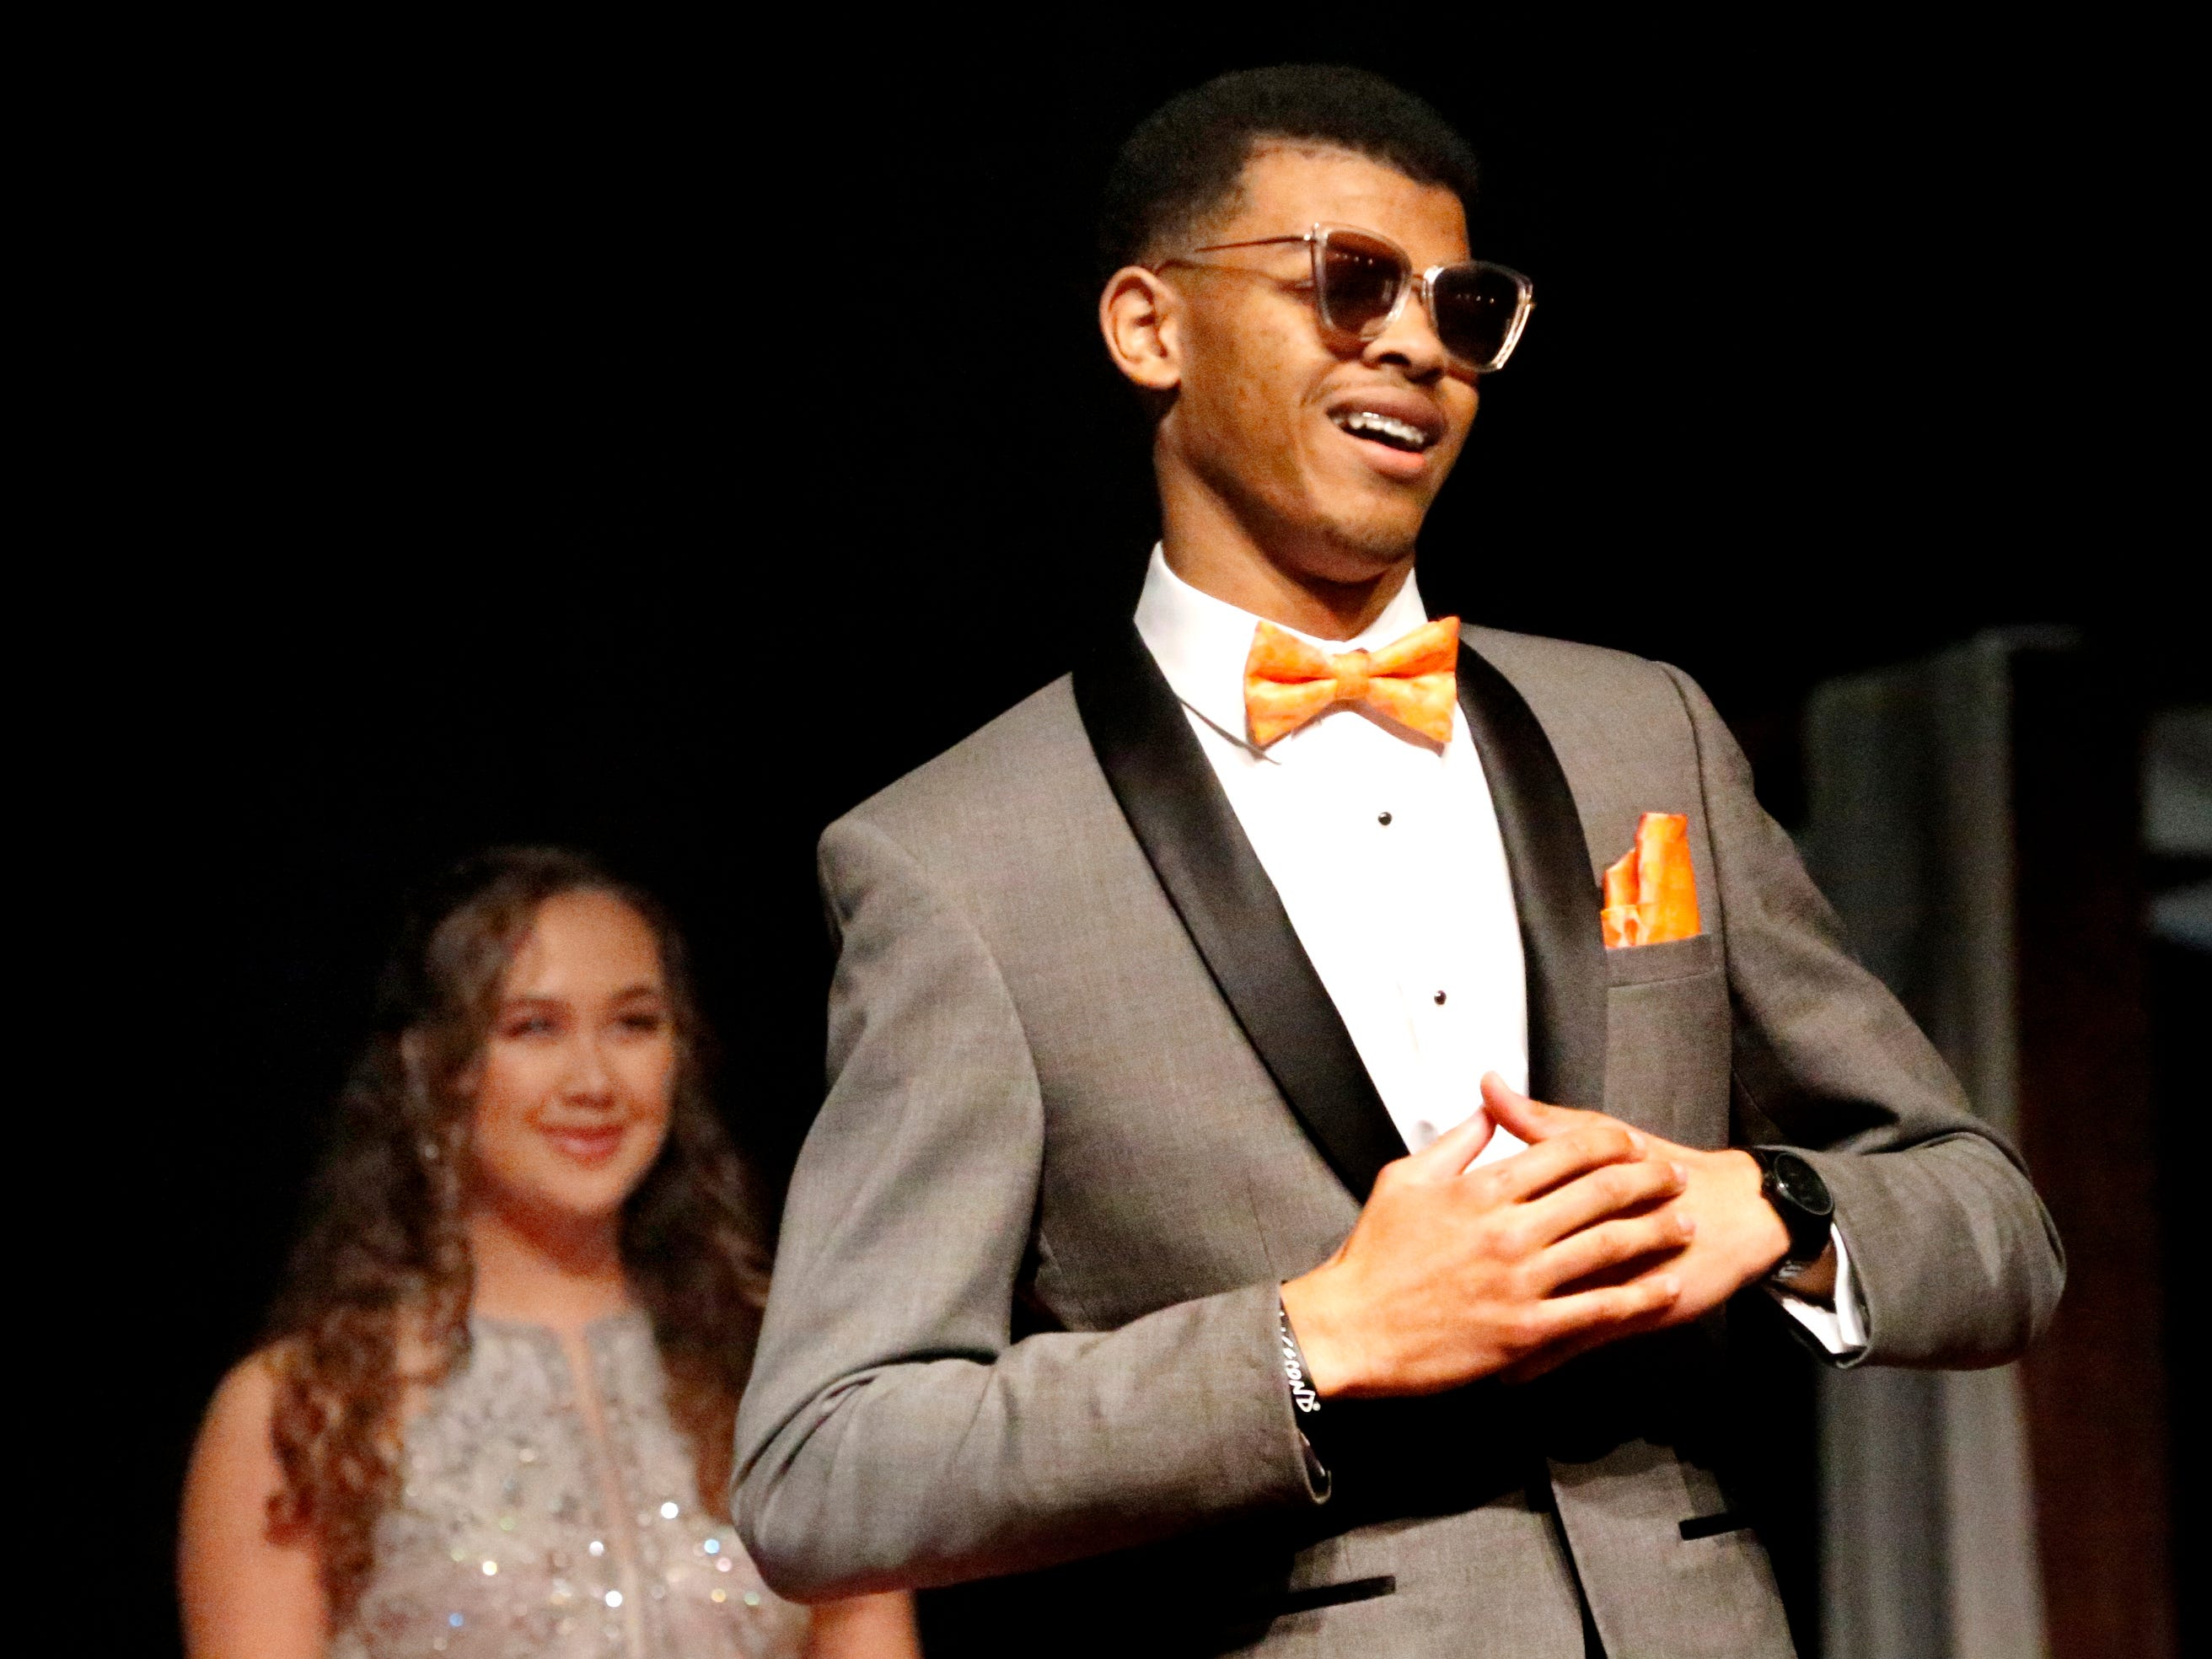 Jaylen Avant shows off his tux at the end of the runway during the Siegel Prom Fashion show on Thursday, Feb. 14, 2019.